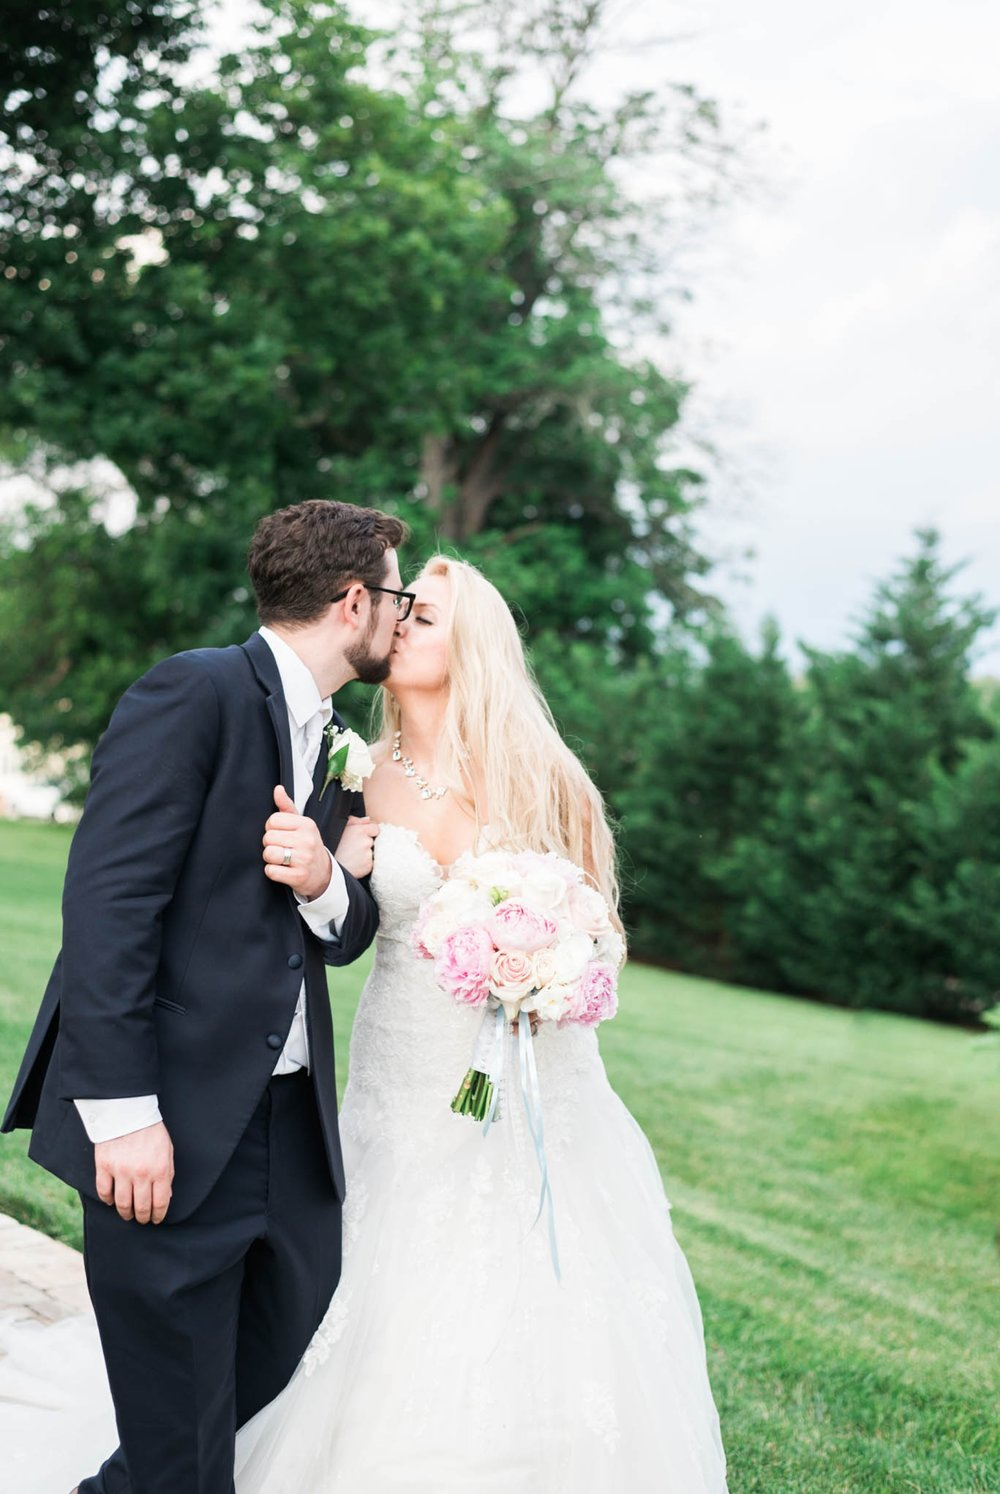 bedfordcolumns_entwinedevents_Lynchburgweddingphotographer_virginiaweddingphotographer_tarahlaunce 31.jpg